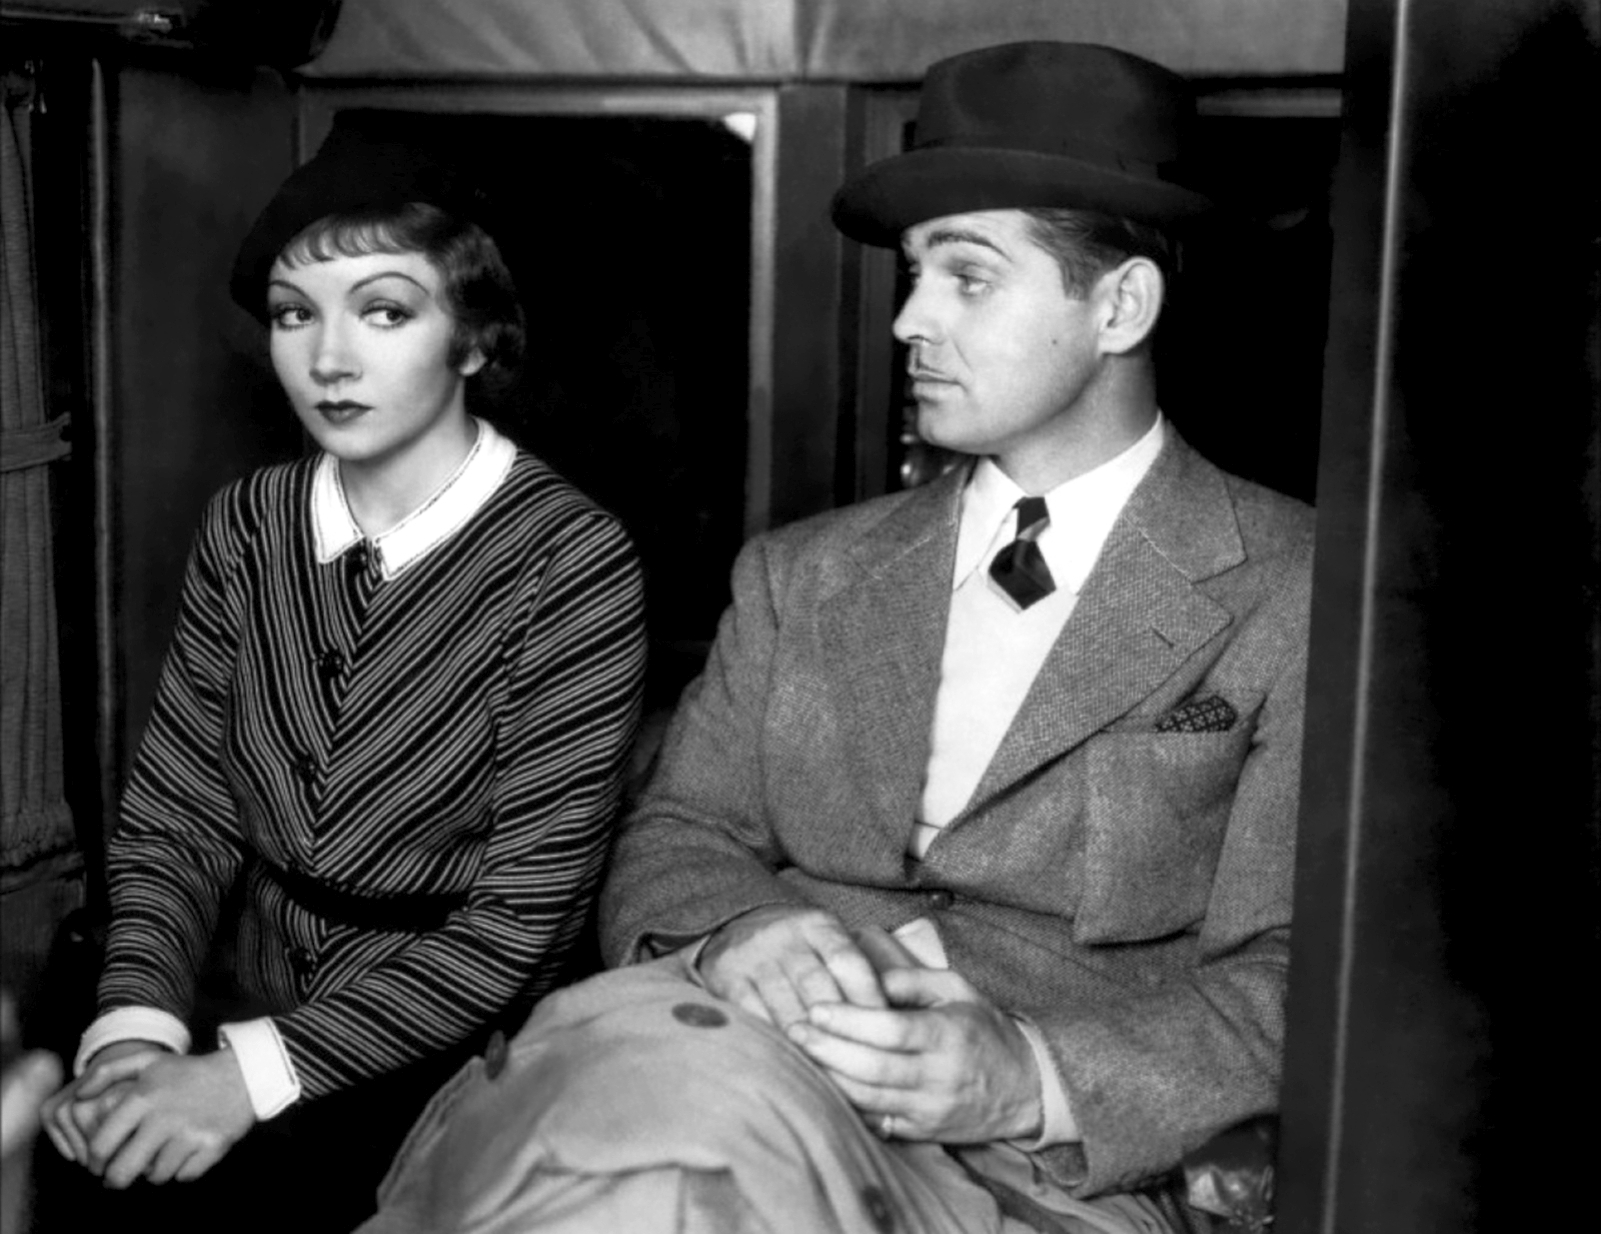 claudette colbert it happened one night 01a